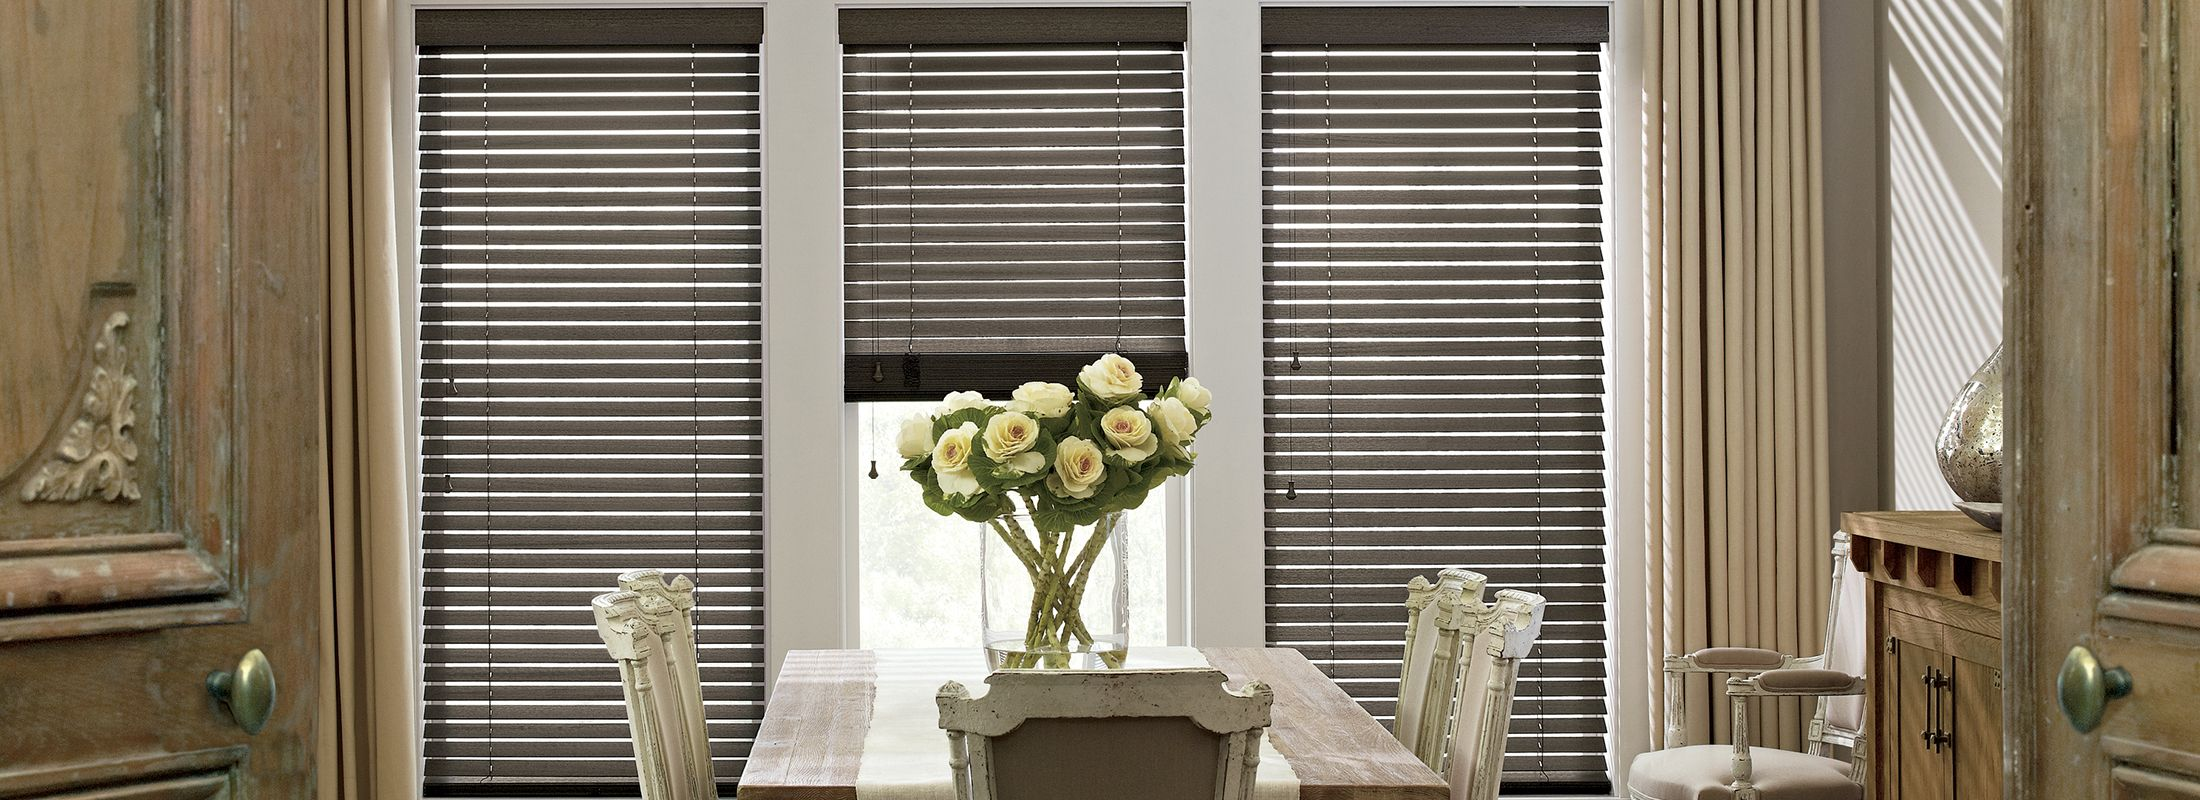 min blinds cornices shades fort florida fl provenance window best dealer office wood coverings for hunter lauderdale home budget american douglas windows woven